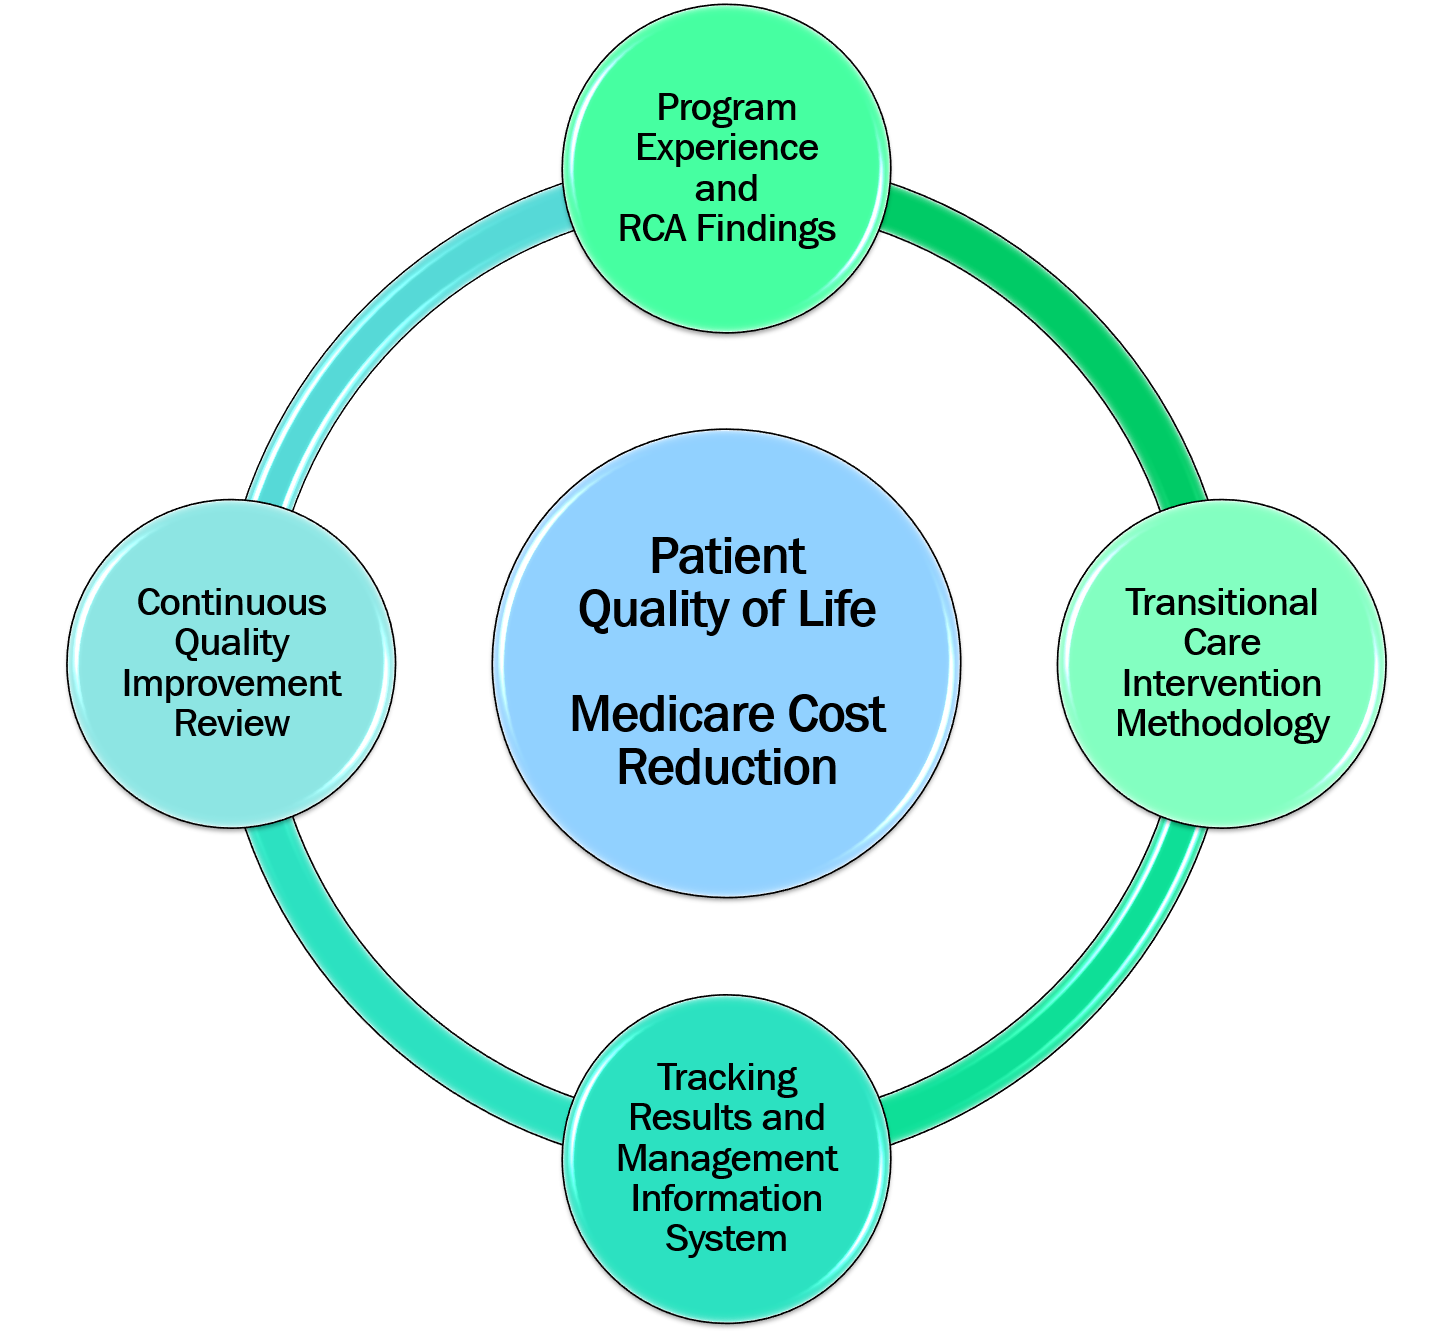 Patient Quality of Life Medicare Cost Reduction